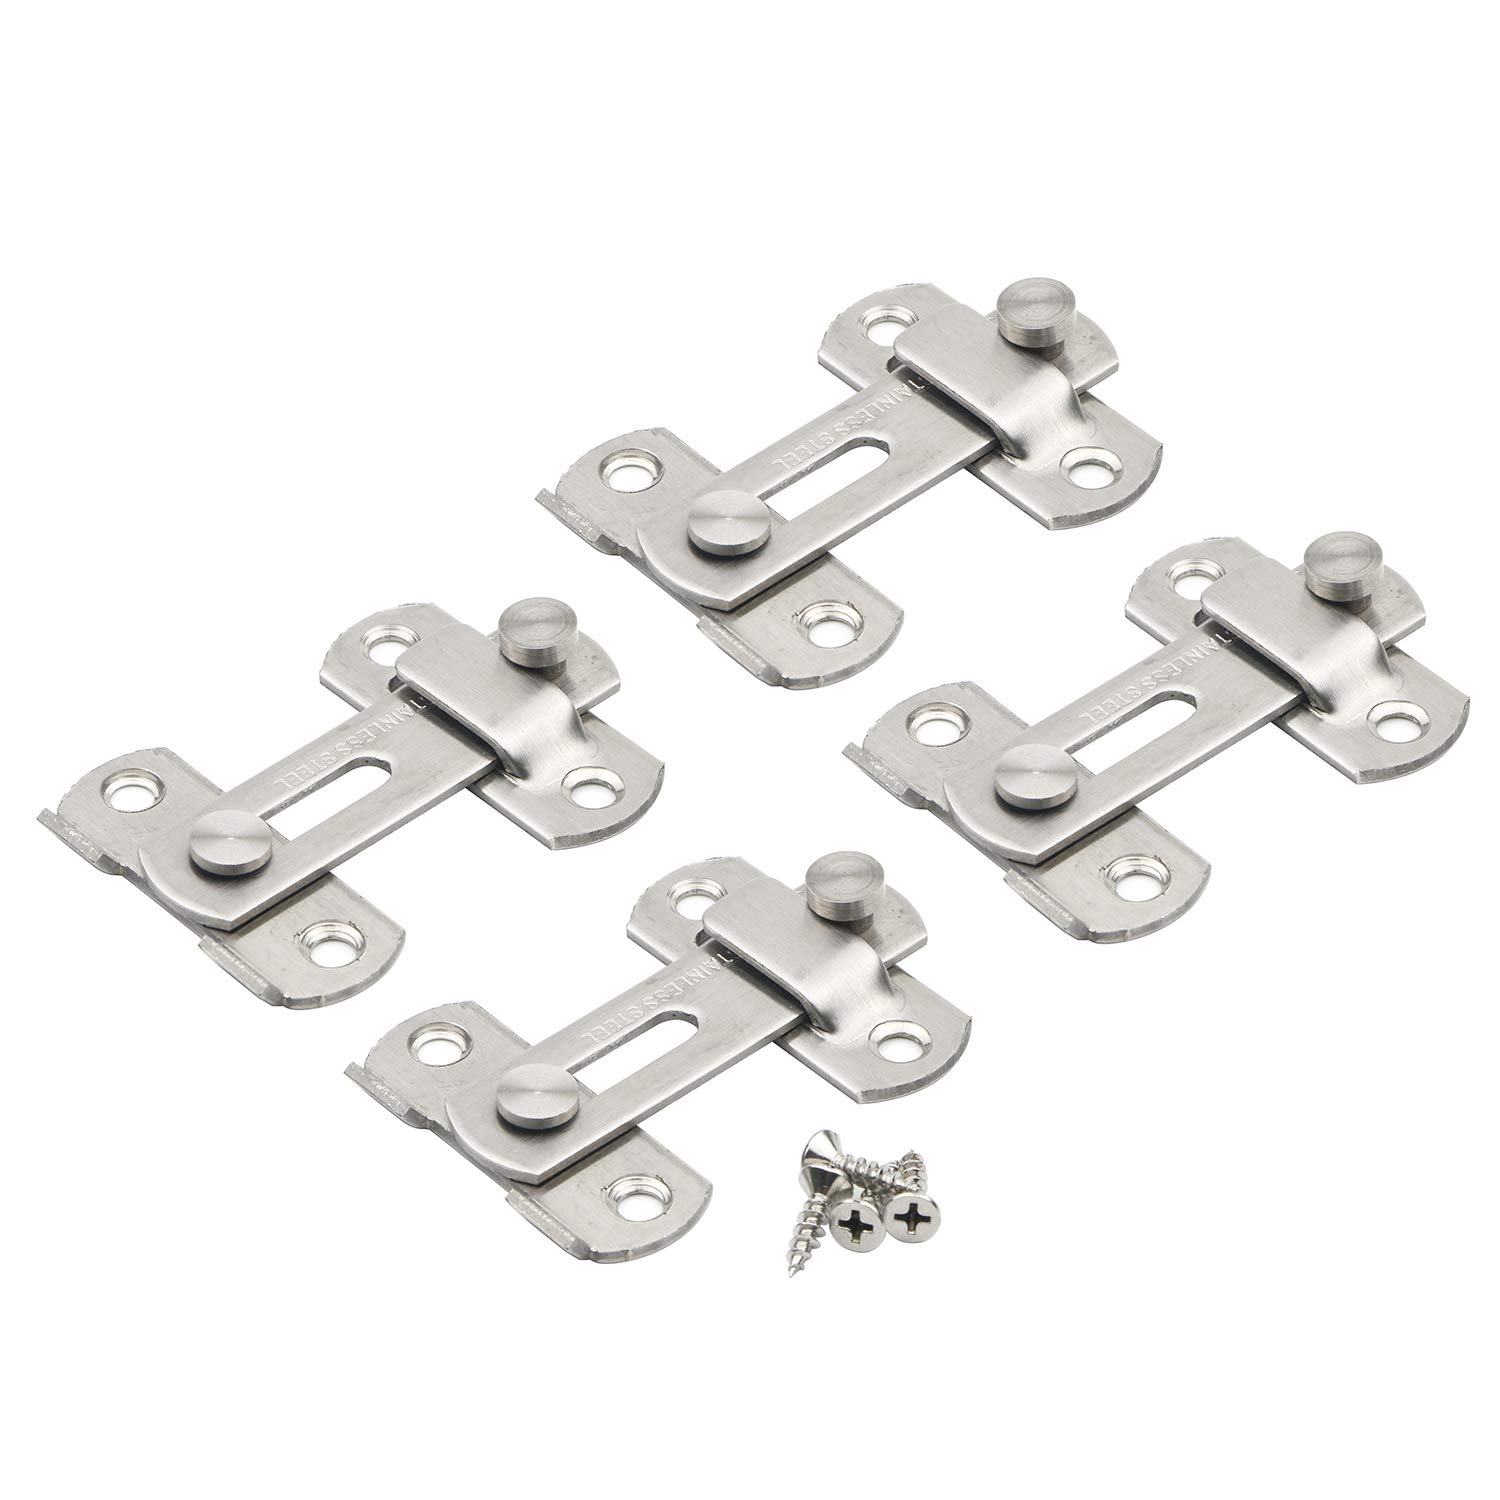 Silver Brushed Finish Heavy Duty Stainless Steel Safety Door Lock Bar Gate Latches Pxyelec 2mm Thickness Flip Door Latch